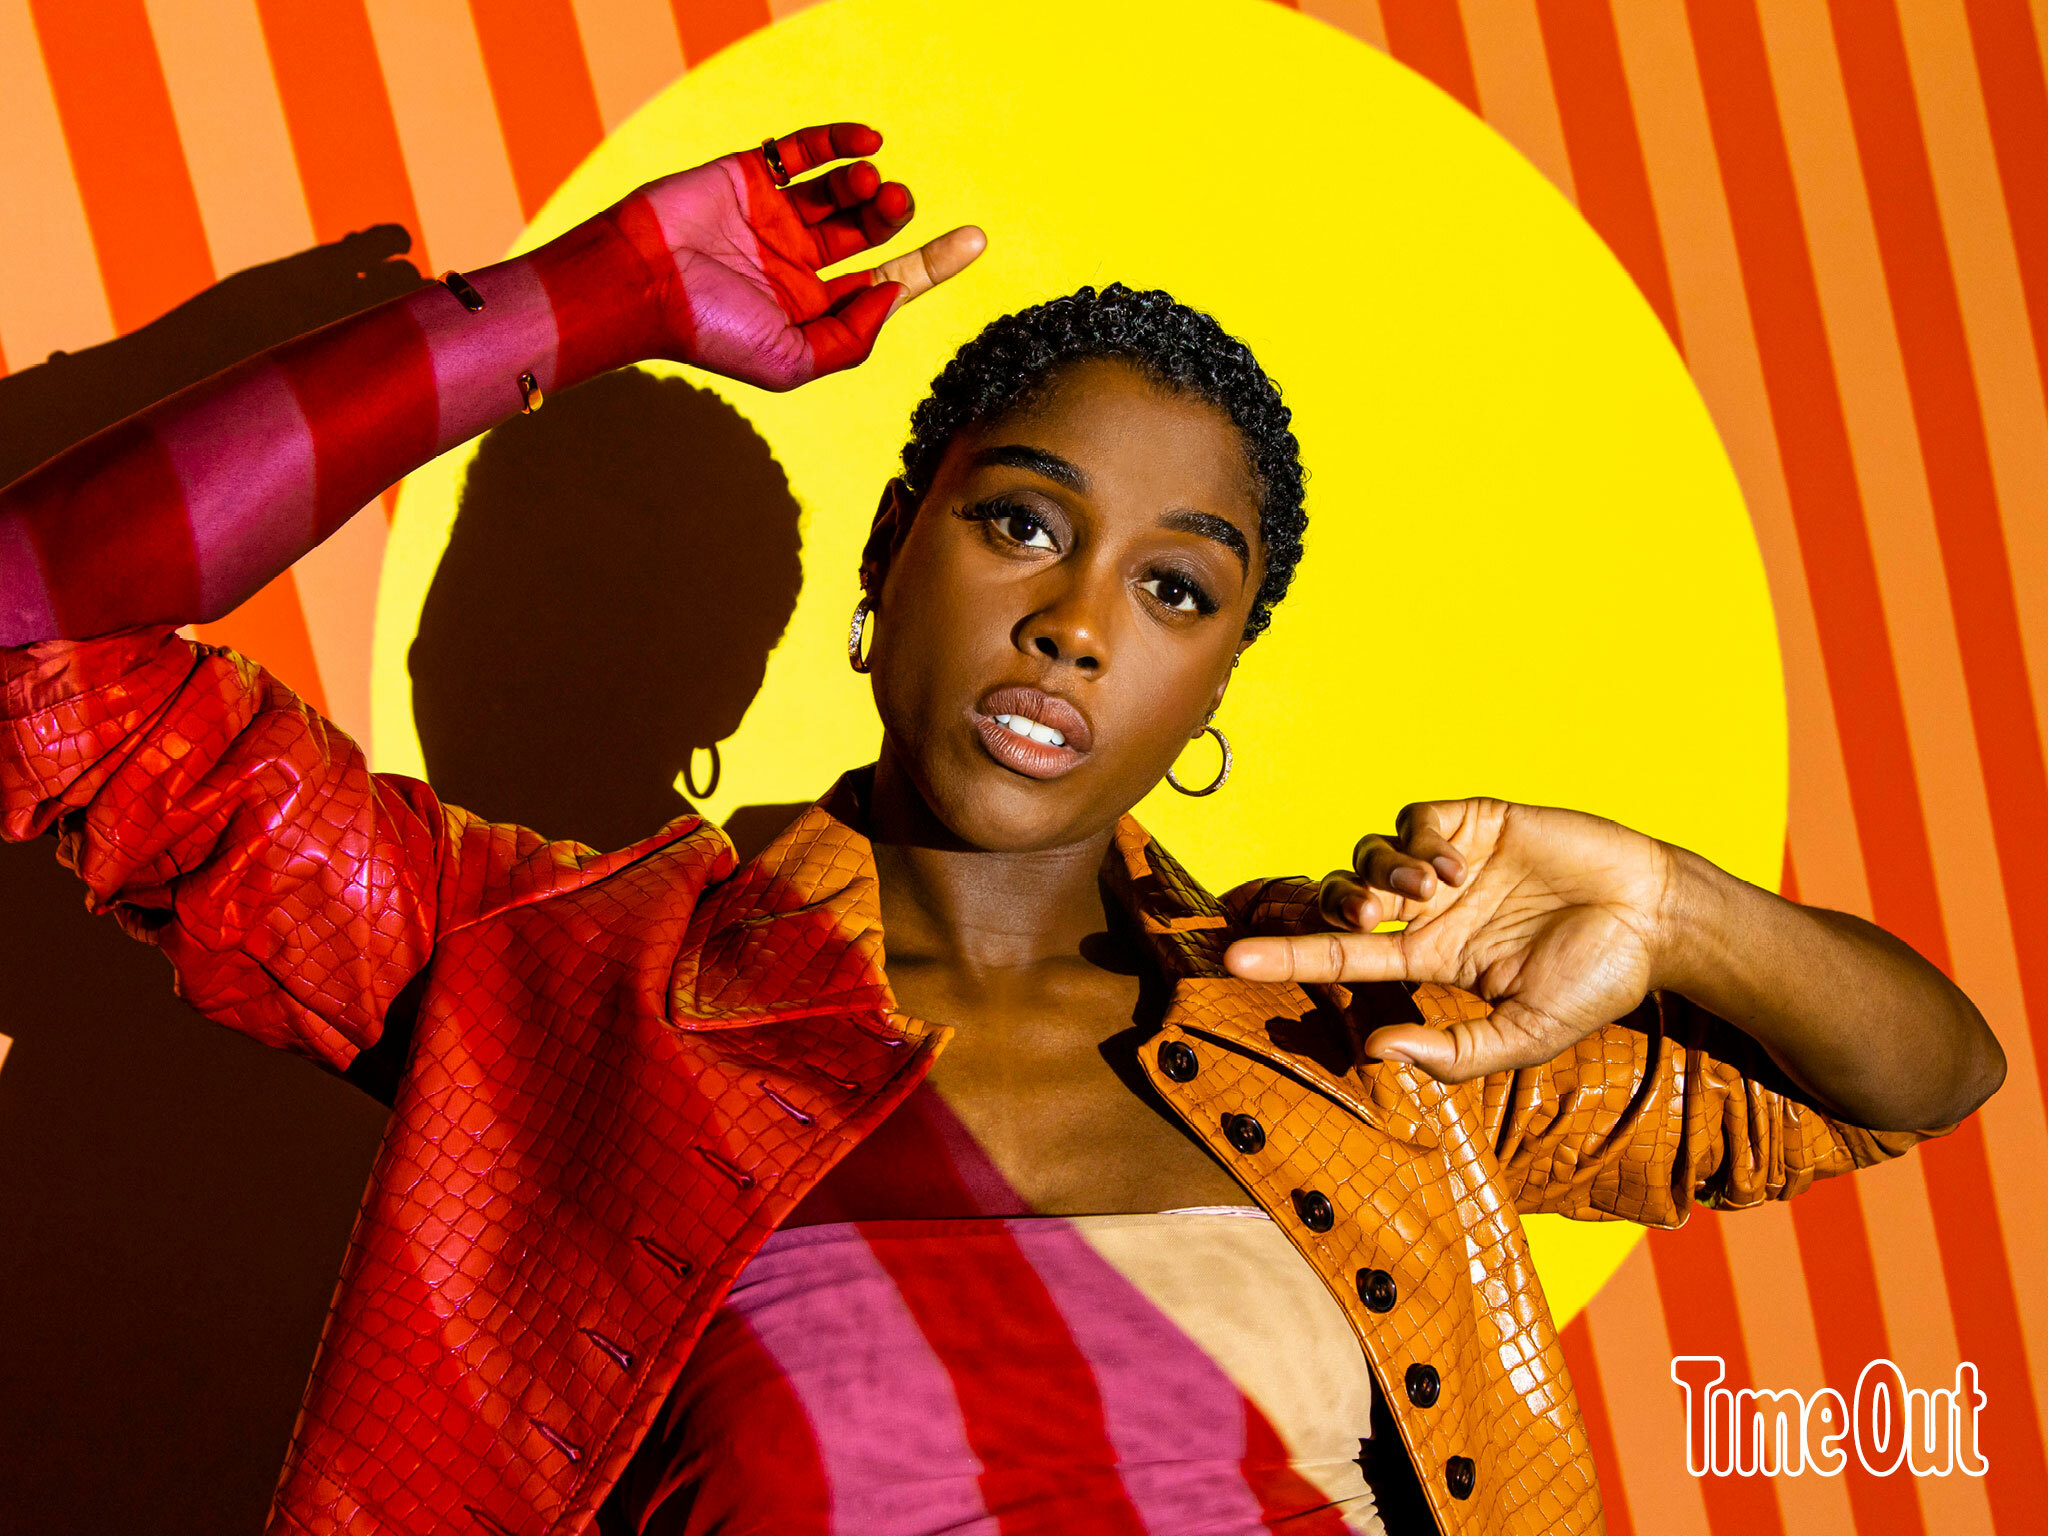 The Lashana Lynch guide to finding inner peace